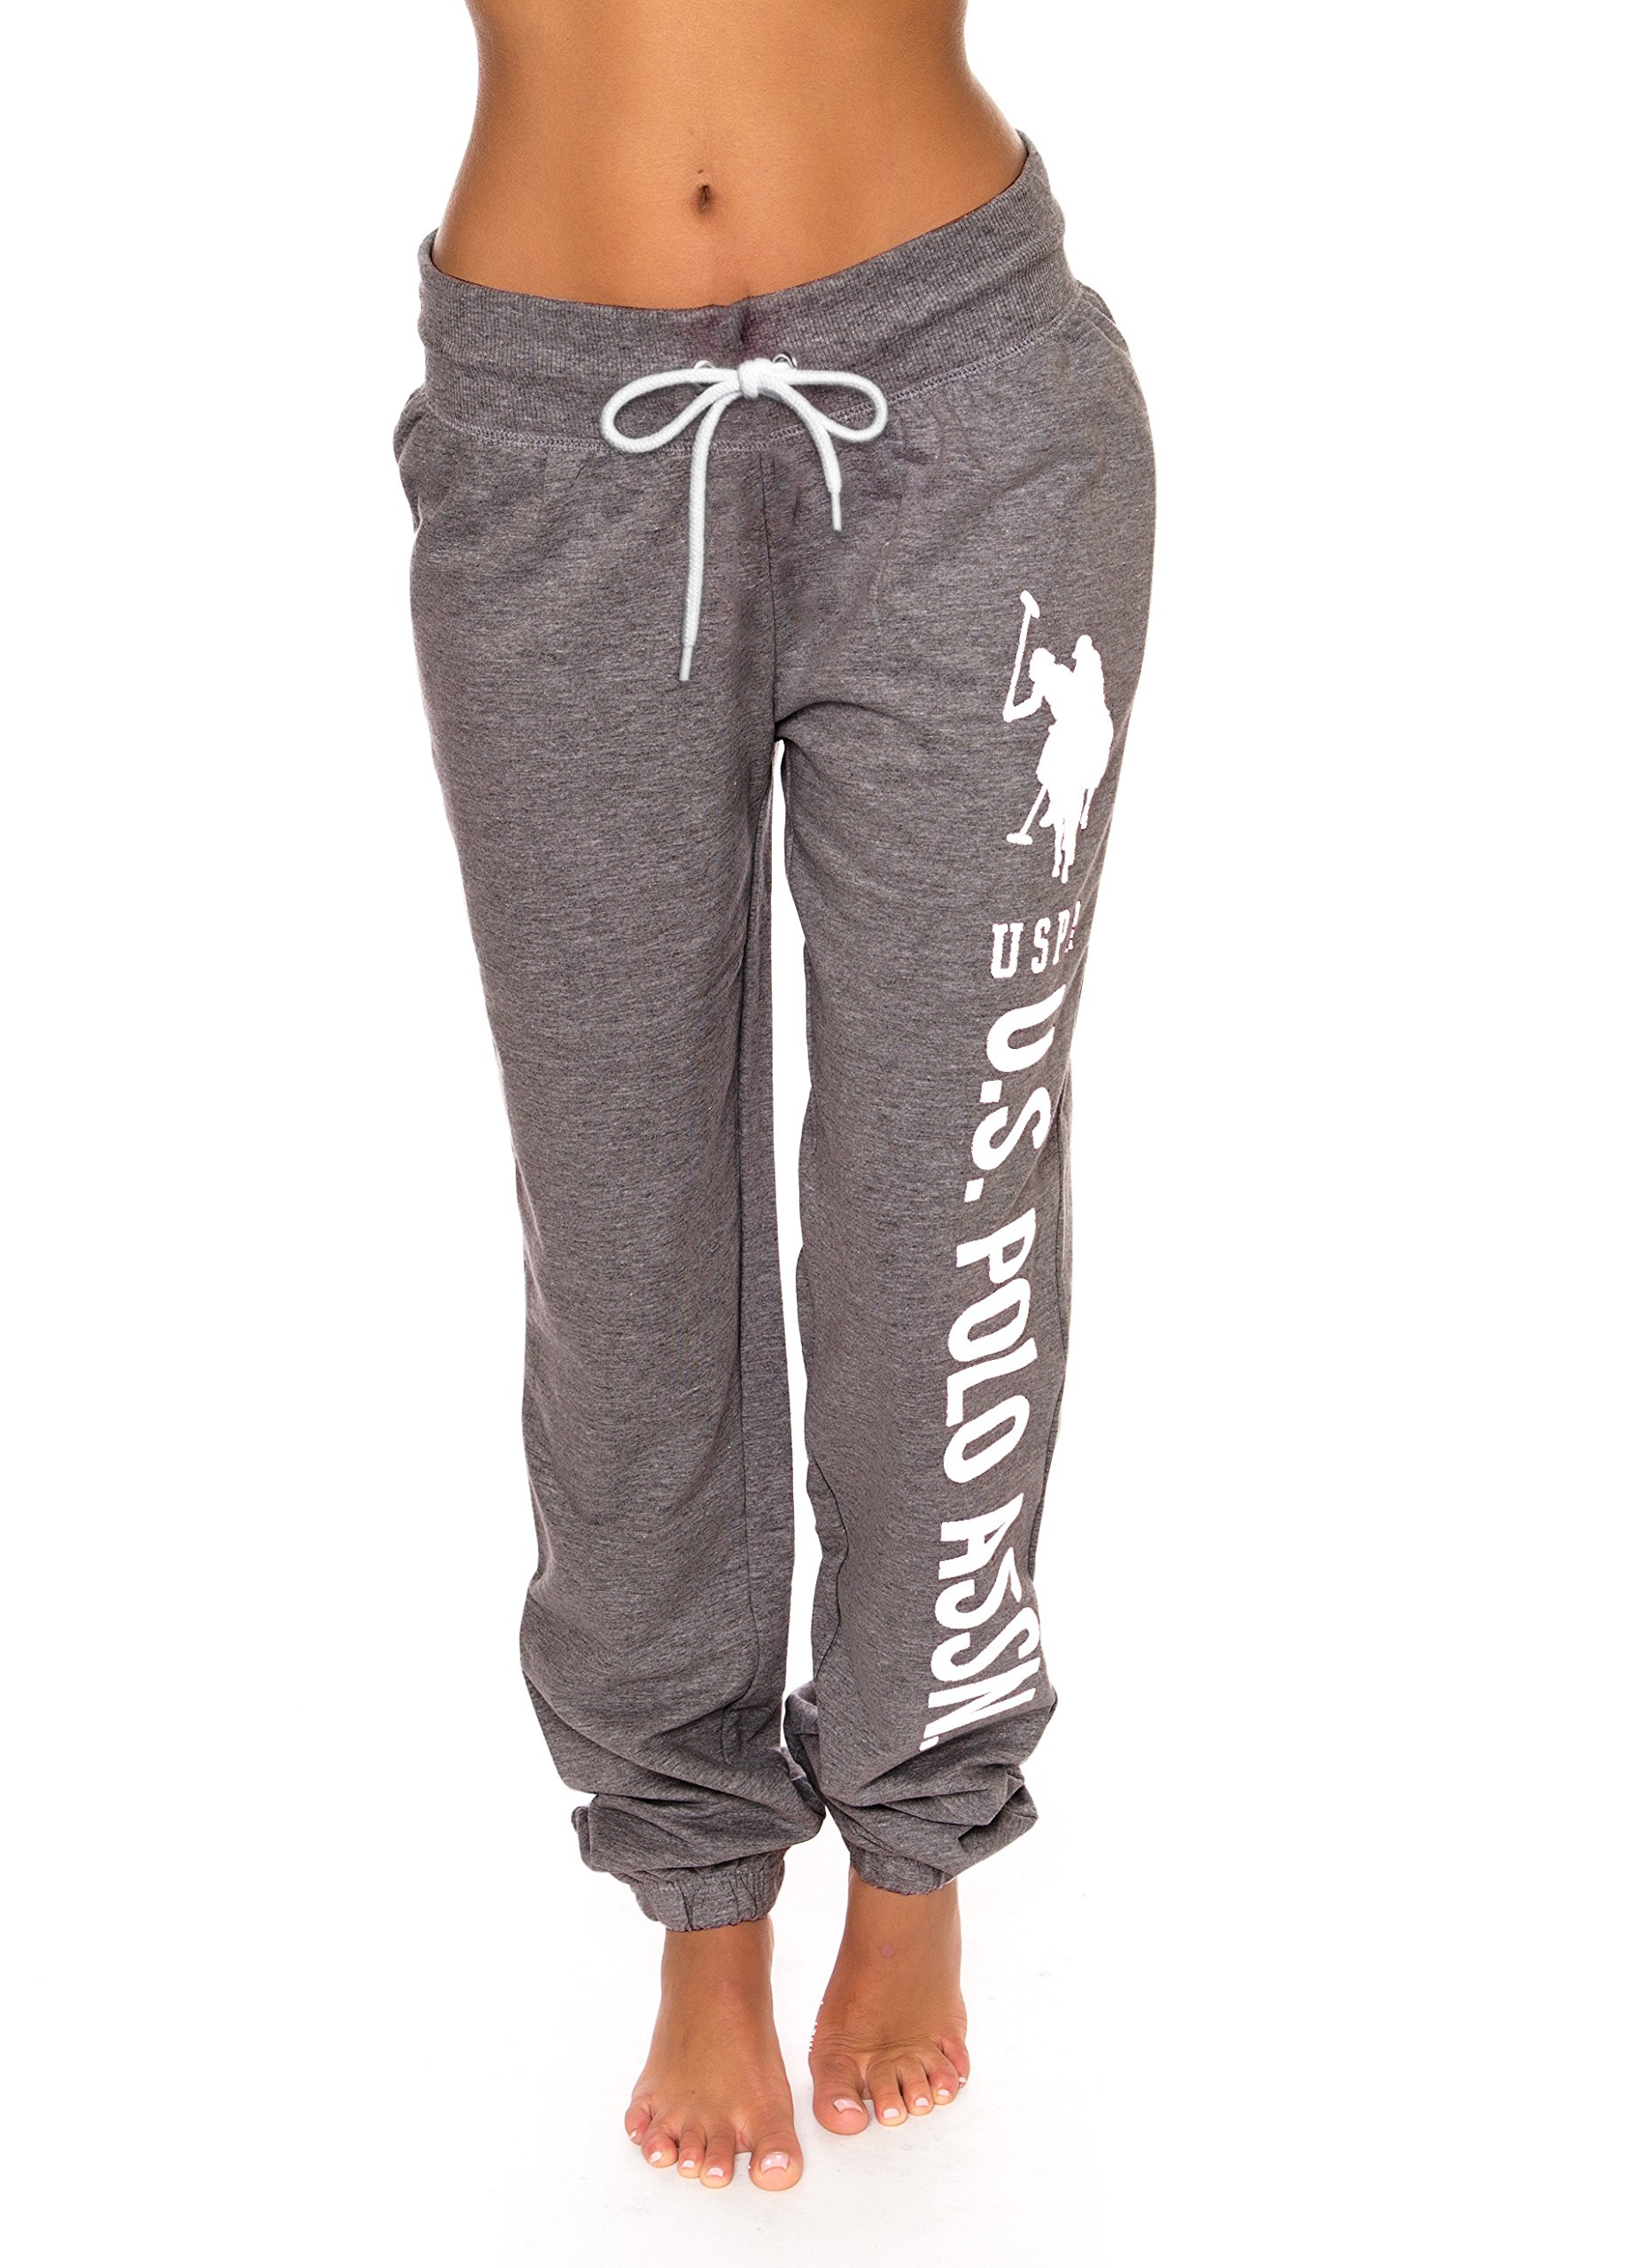 U.S. Polo Assn. Womens Printed French Terry Boyfriend Jogger Sweatpants Charcoal Heather Medium